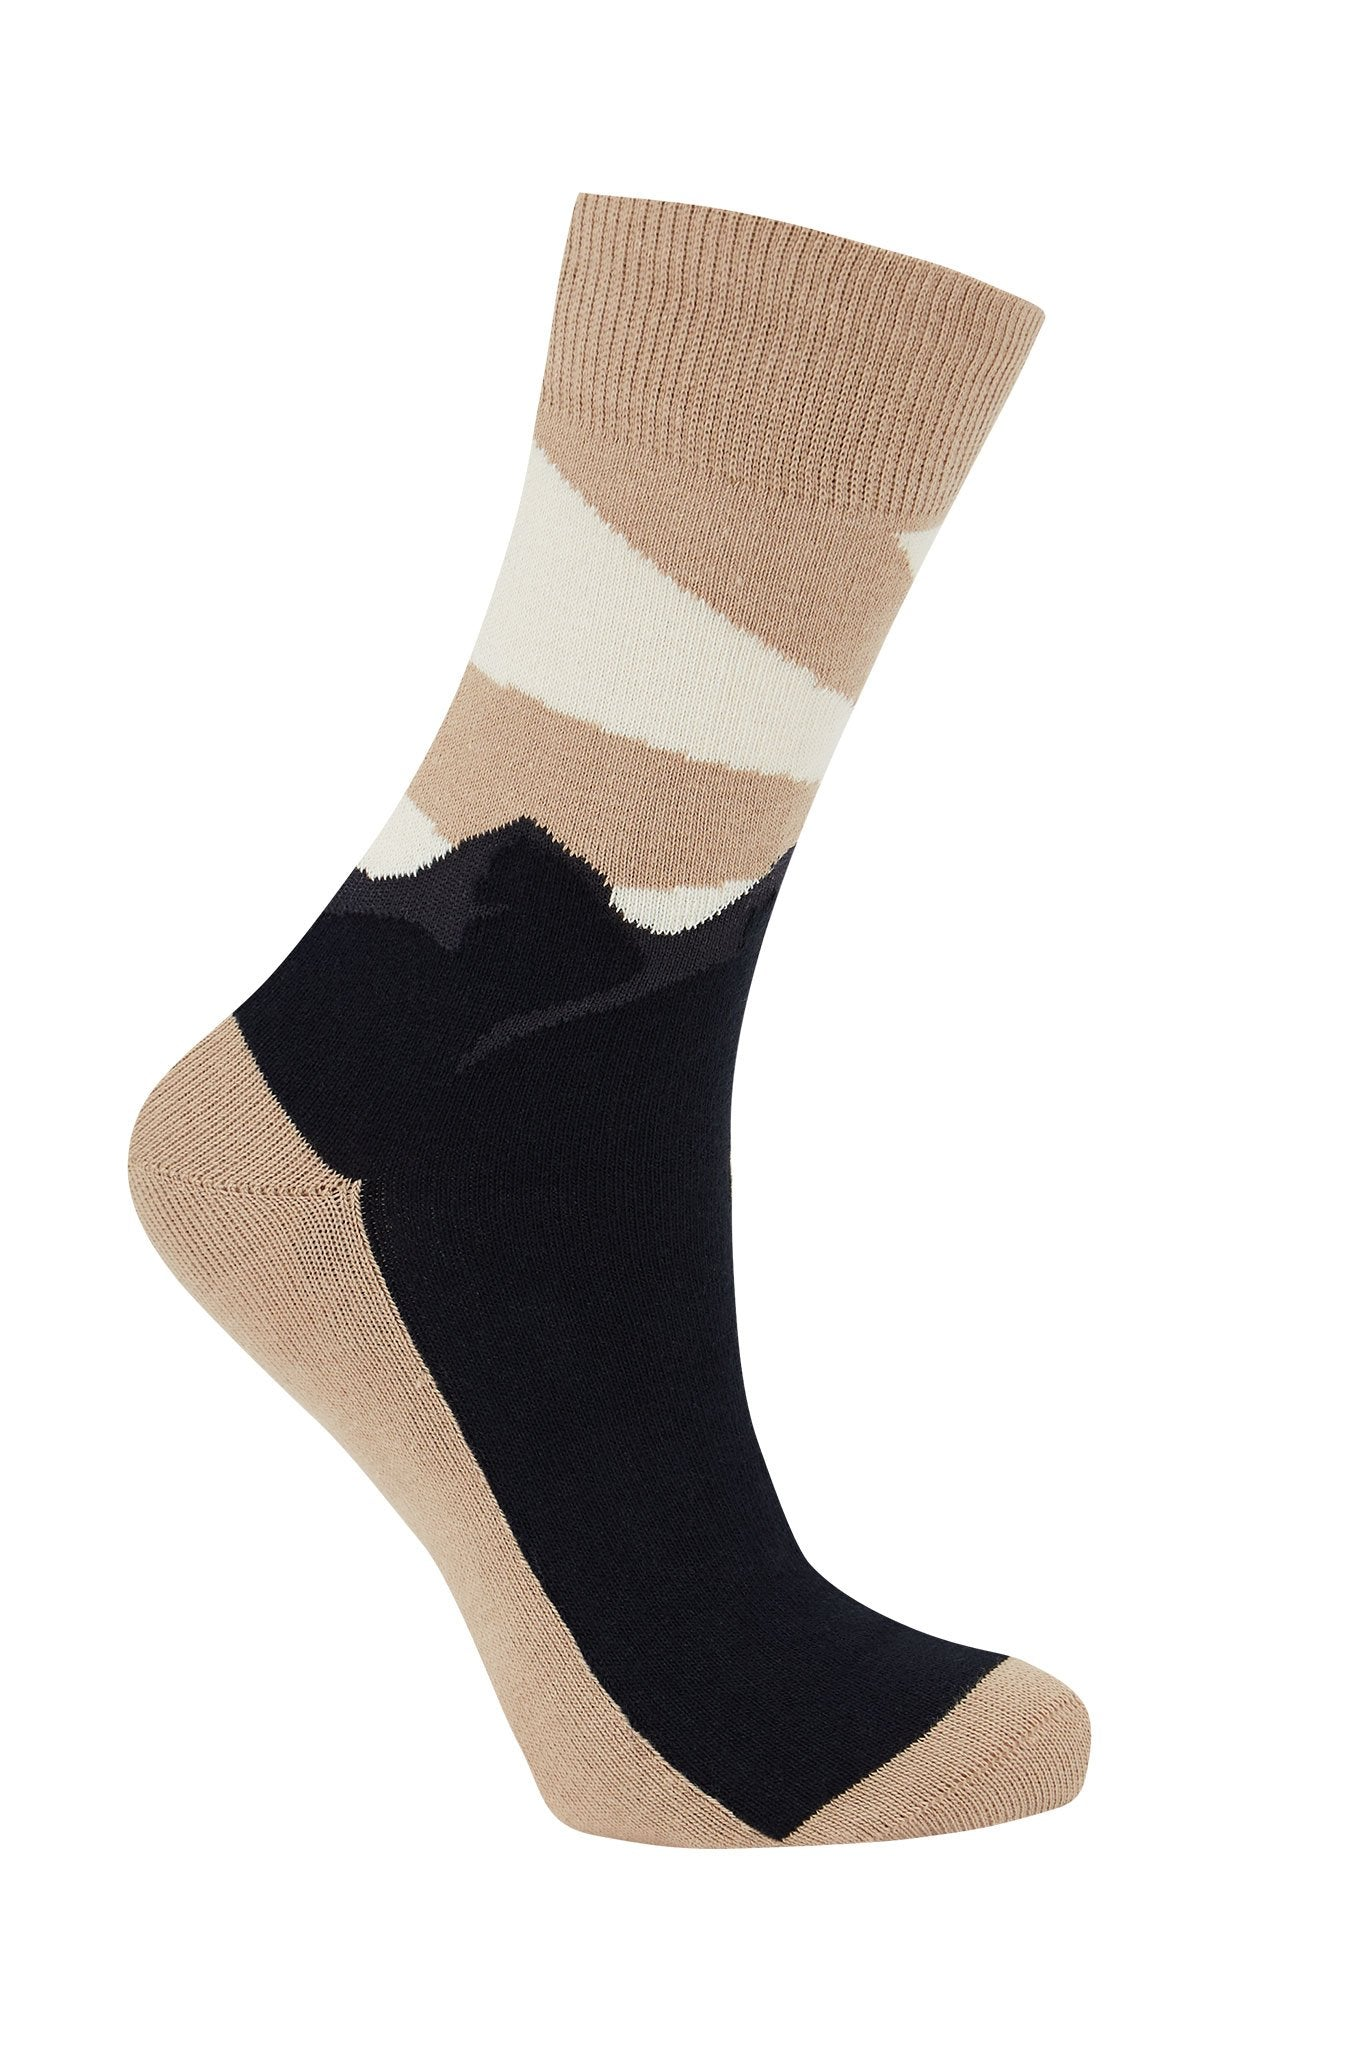 TIBET Ink - GOTS Organic Cotton Socks